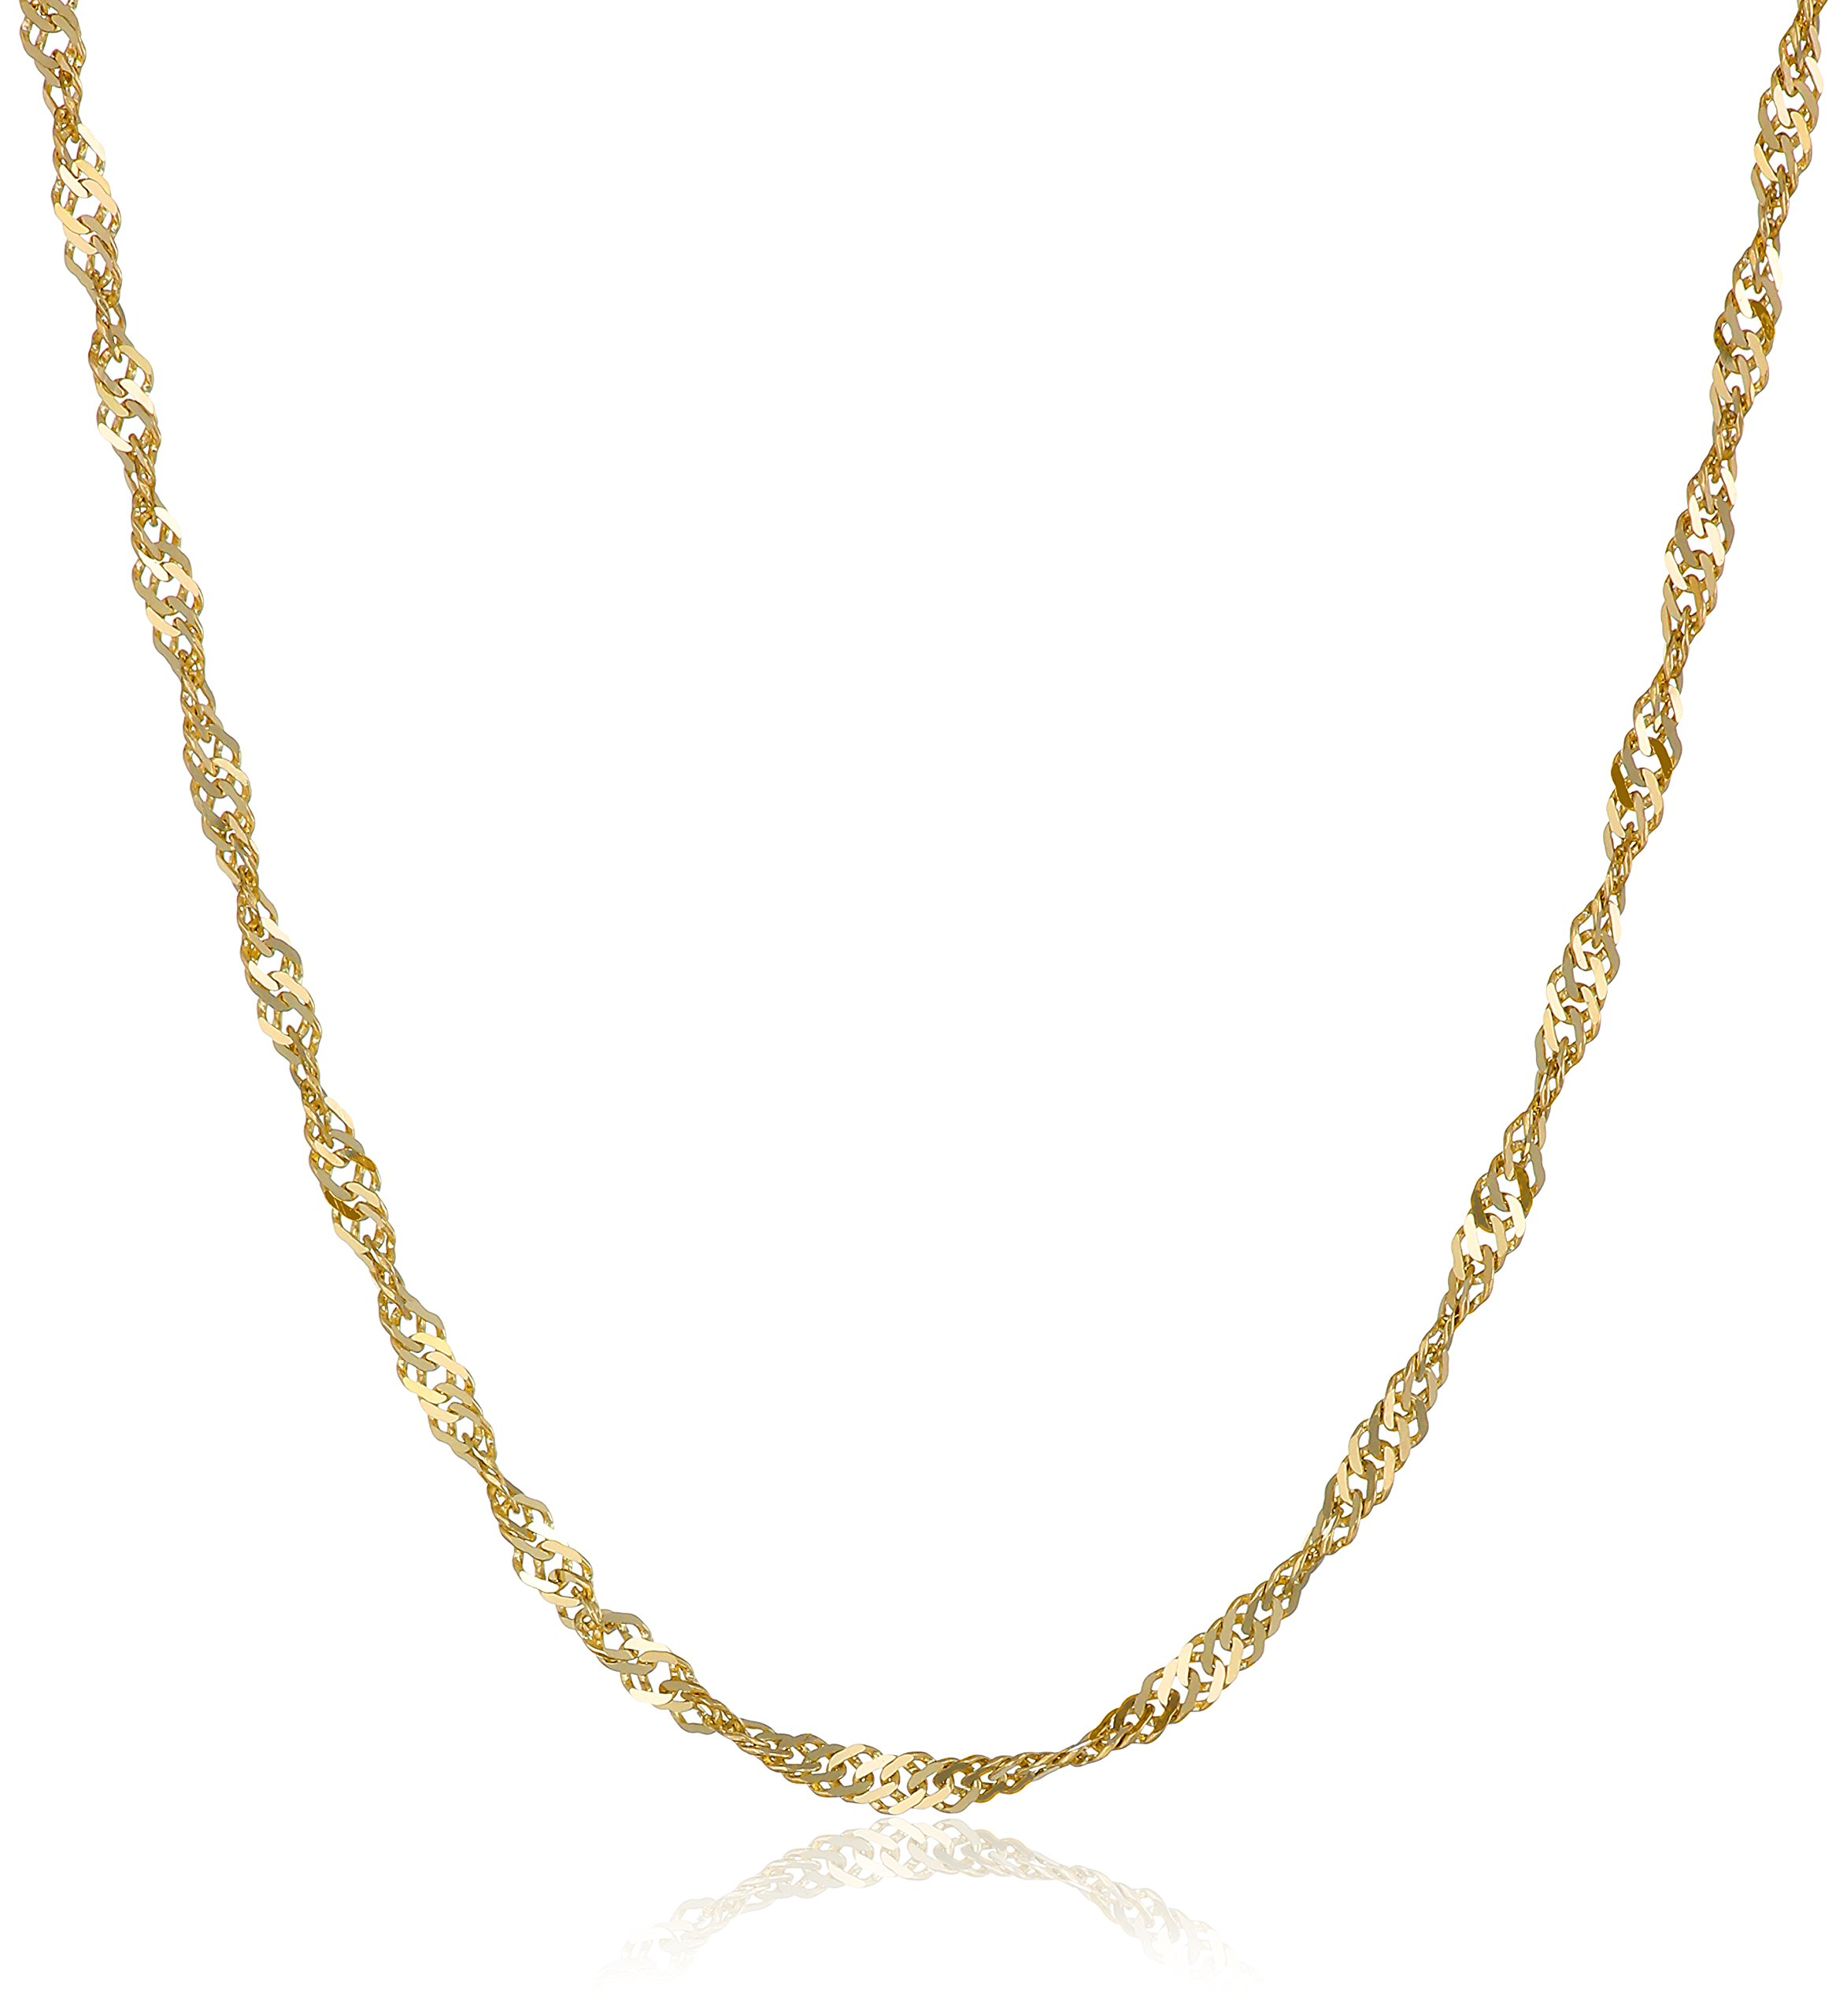 10k Yellow Gold 1.35mm Solid Singapore Chain Necklace, 22''